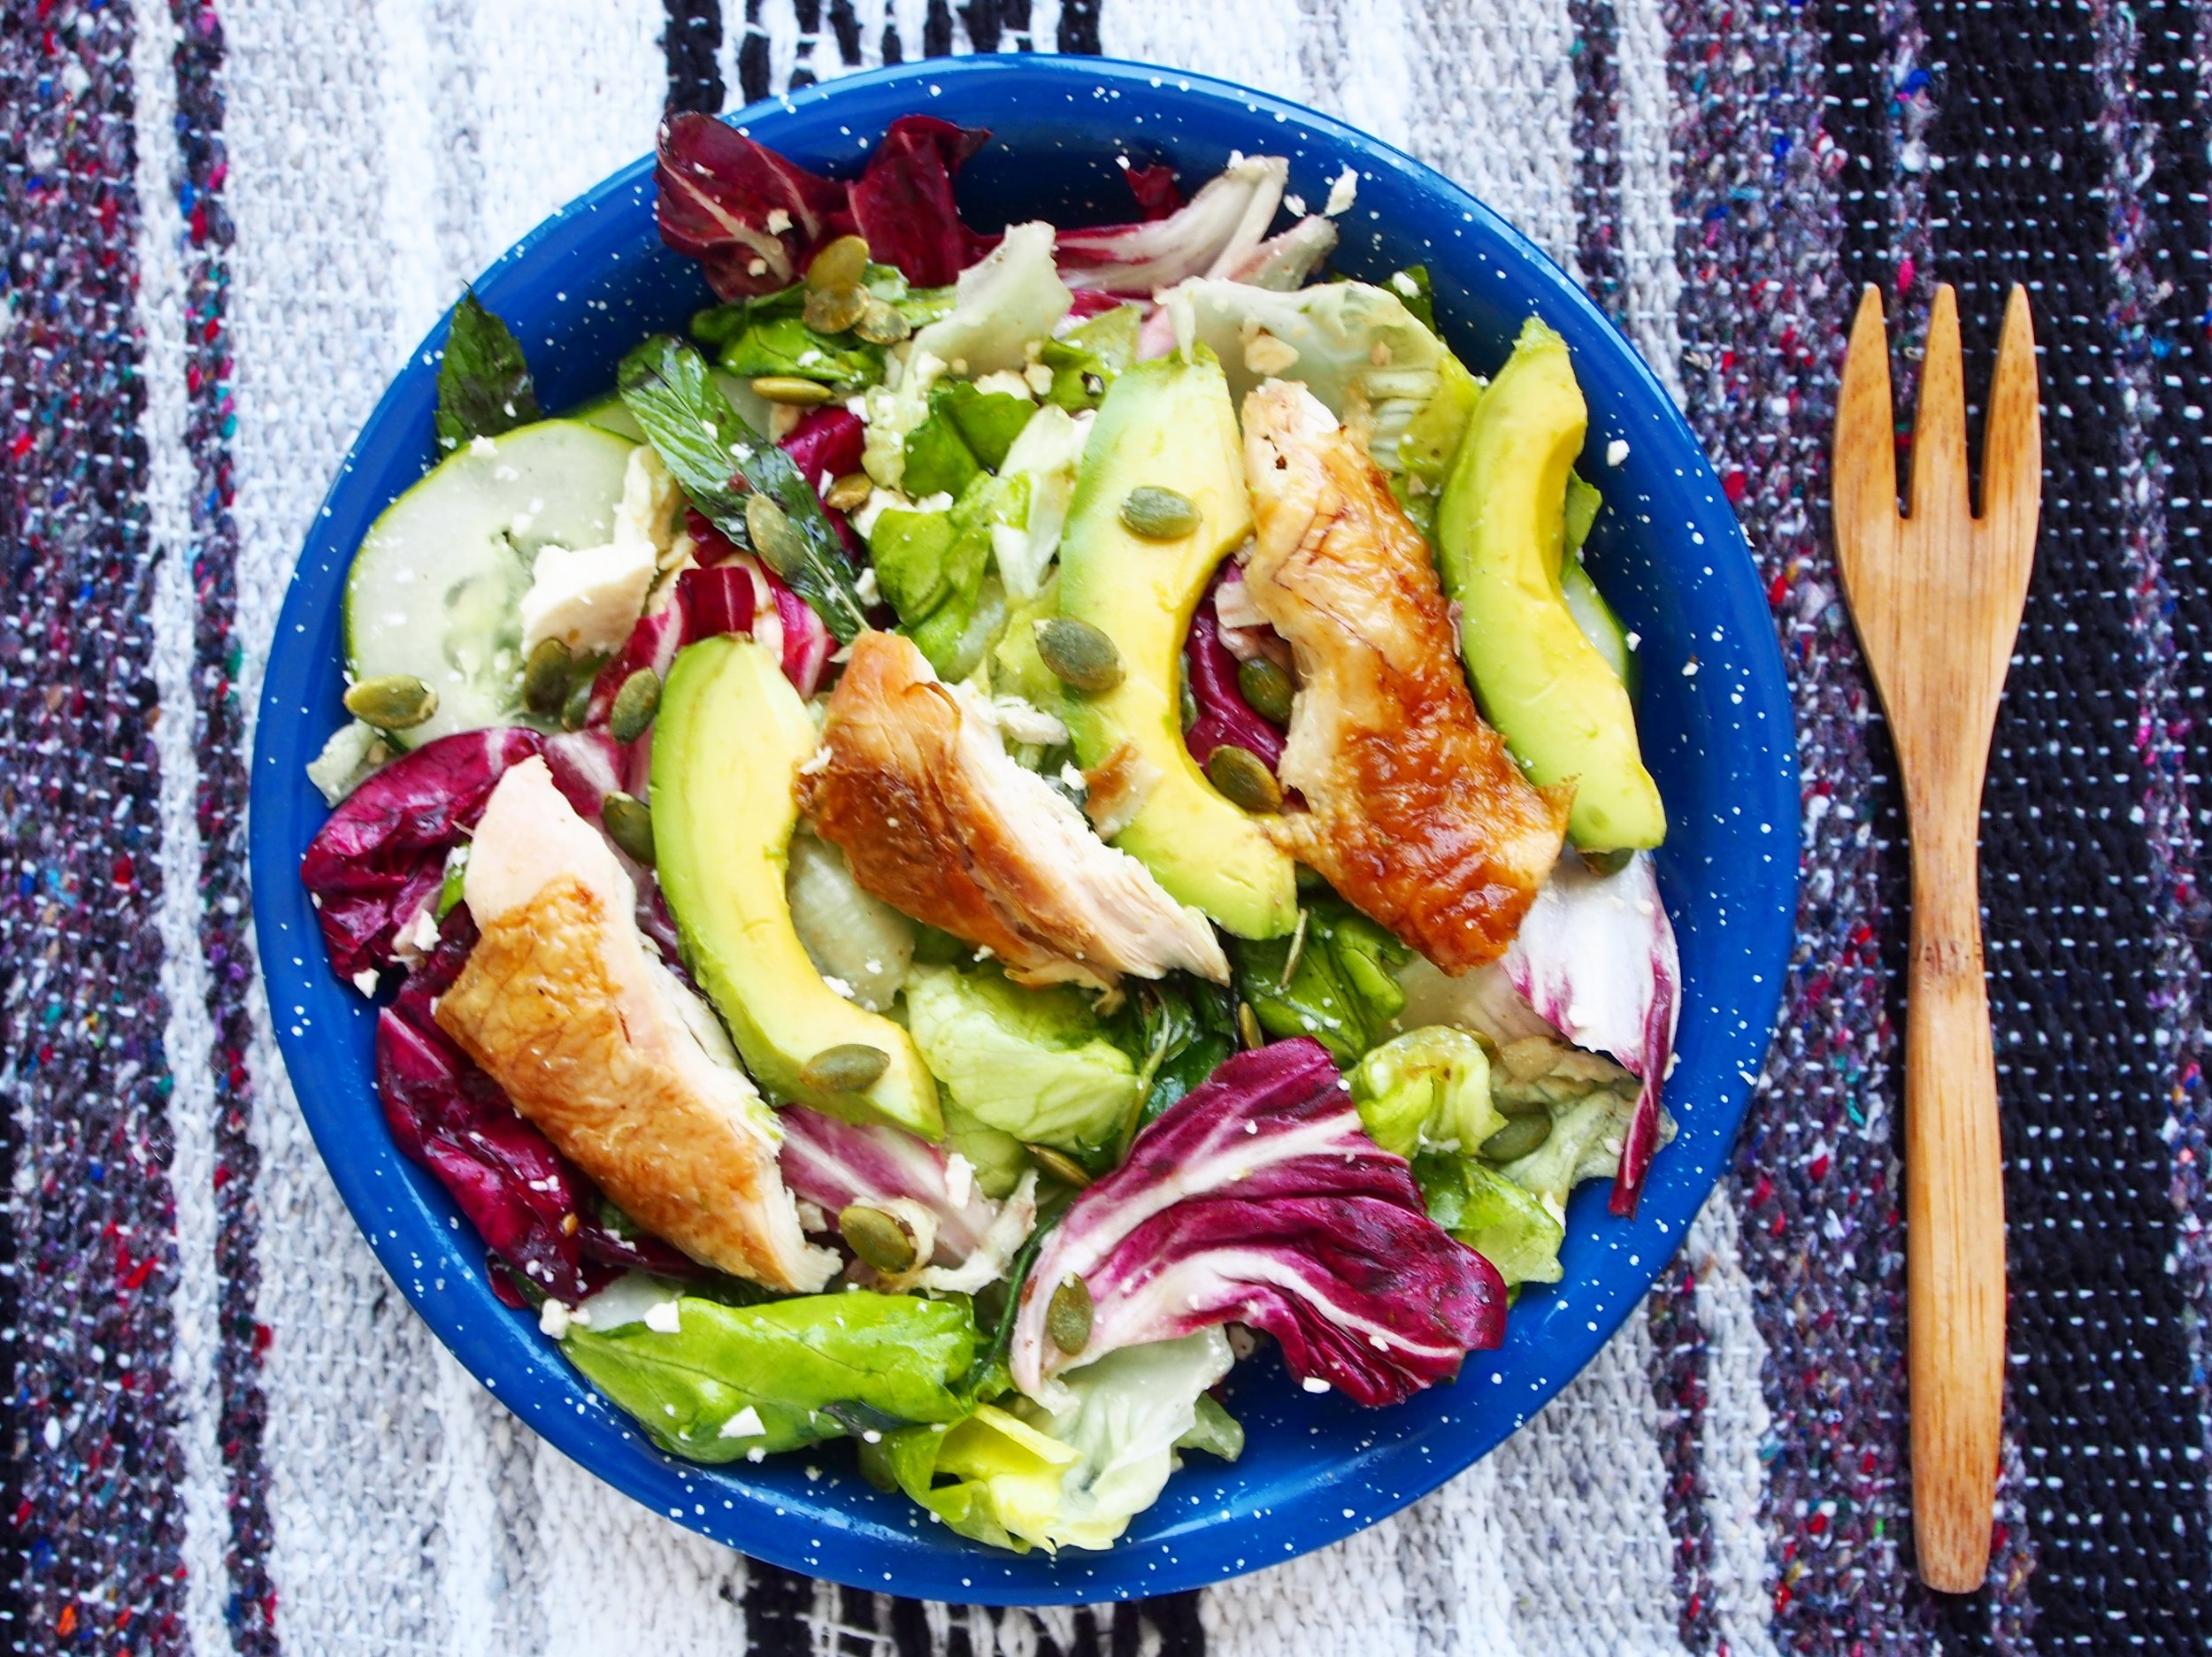 This chicken salad recipe is a main course salad recipe that can be served warm over a bed of greens. It's a delicious and quick salad recipe that's perfect for a weeknight dinner.